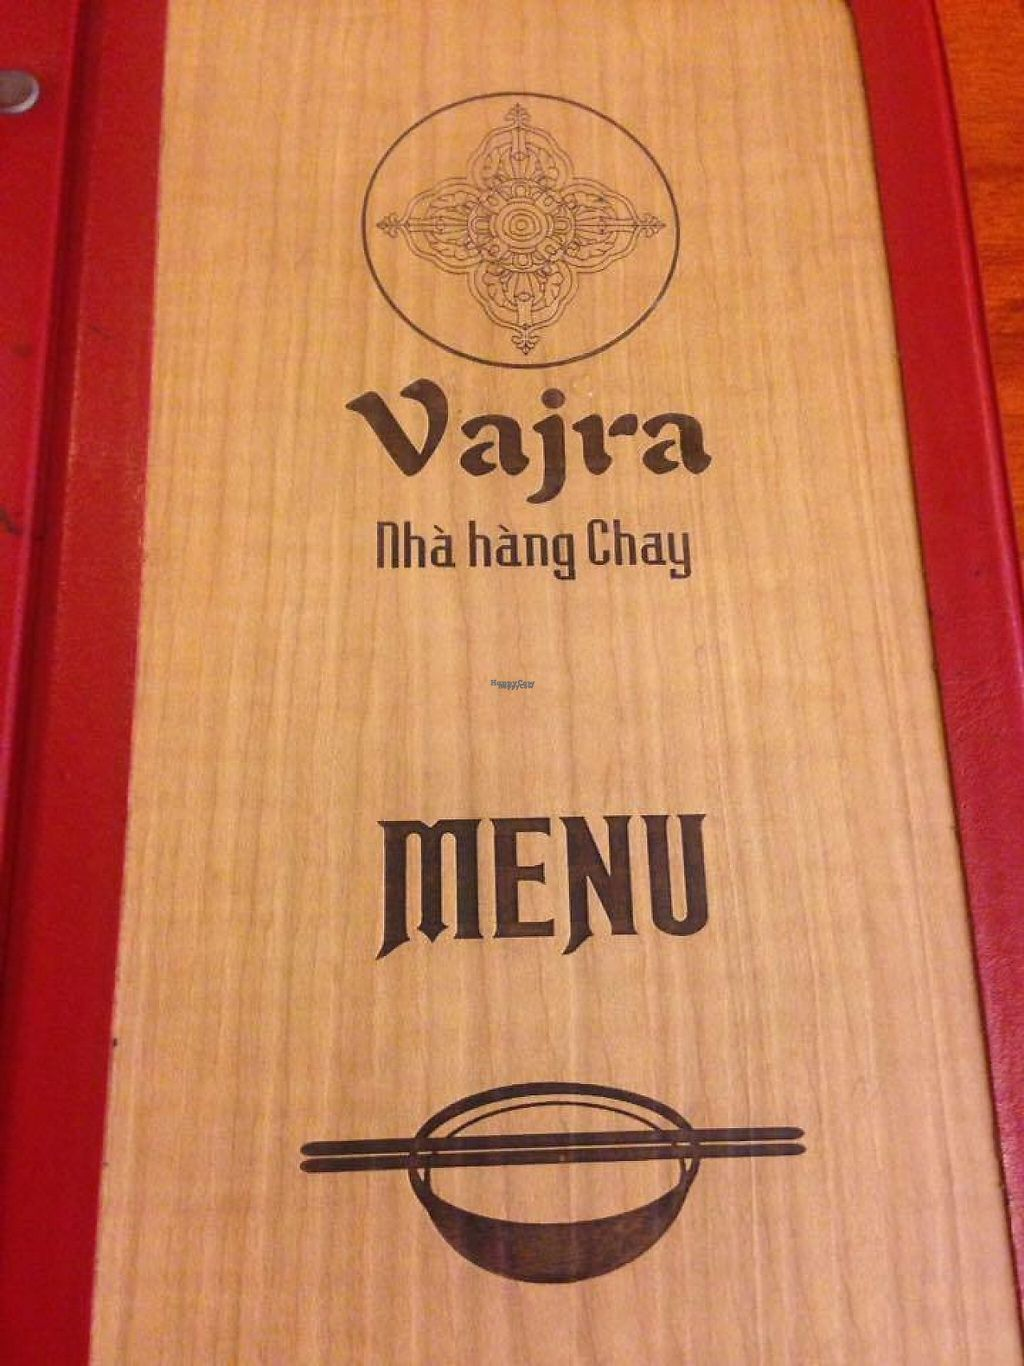 """Photo of Vajra  by <a href=""""/members/profile/harryang"""">harryang</a> <br/>Menu <br/> April 16, 2017  - <a href='/contact/abuse/image/89506/248773'>Report</a>"""